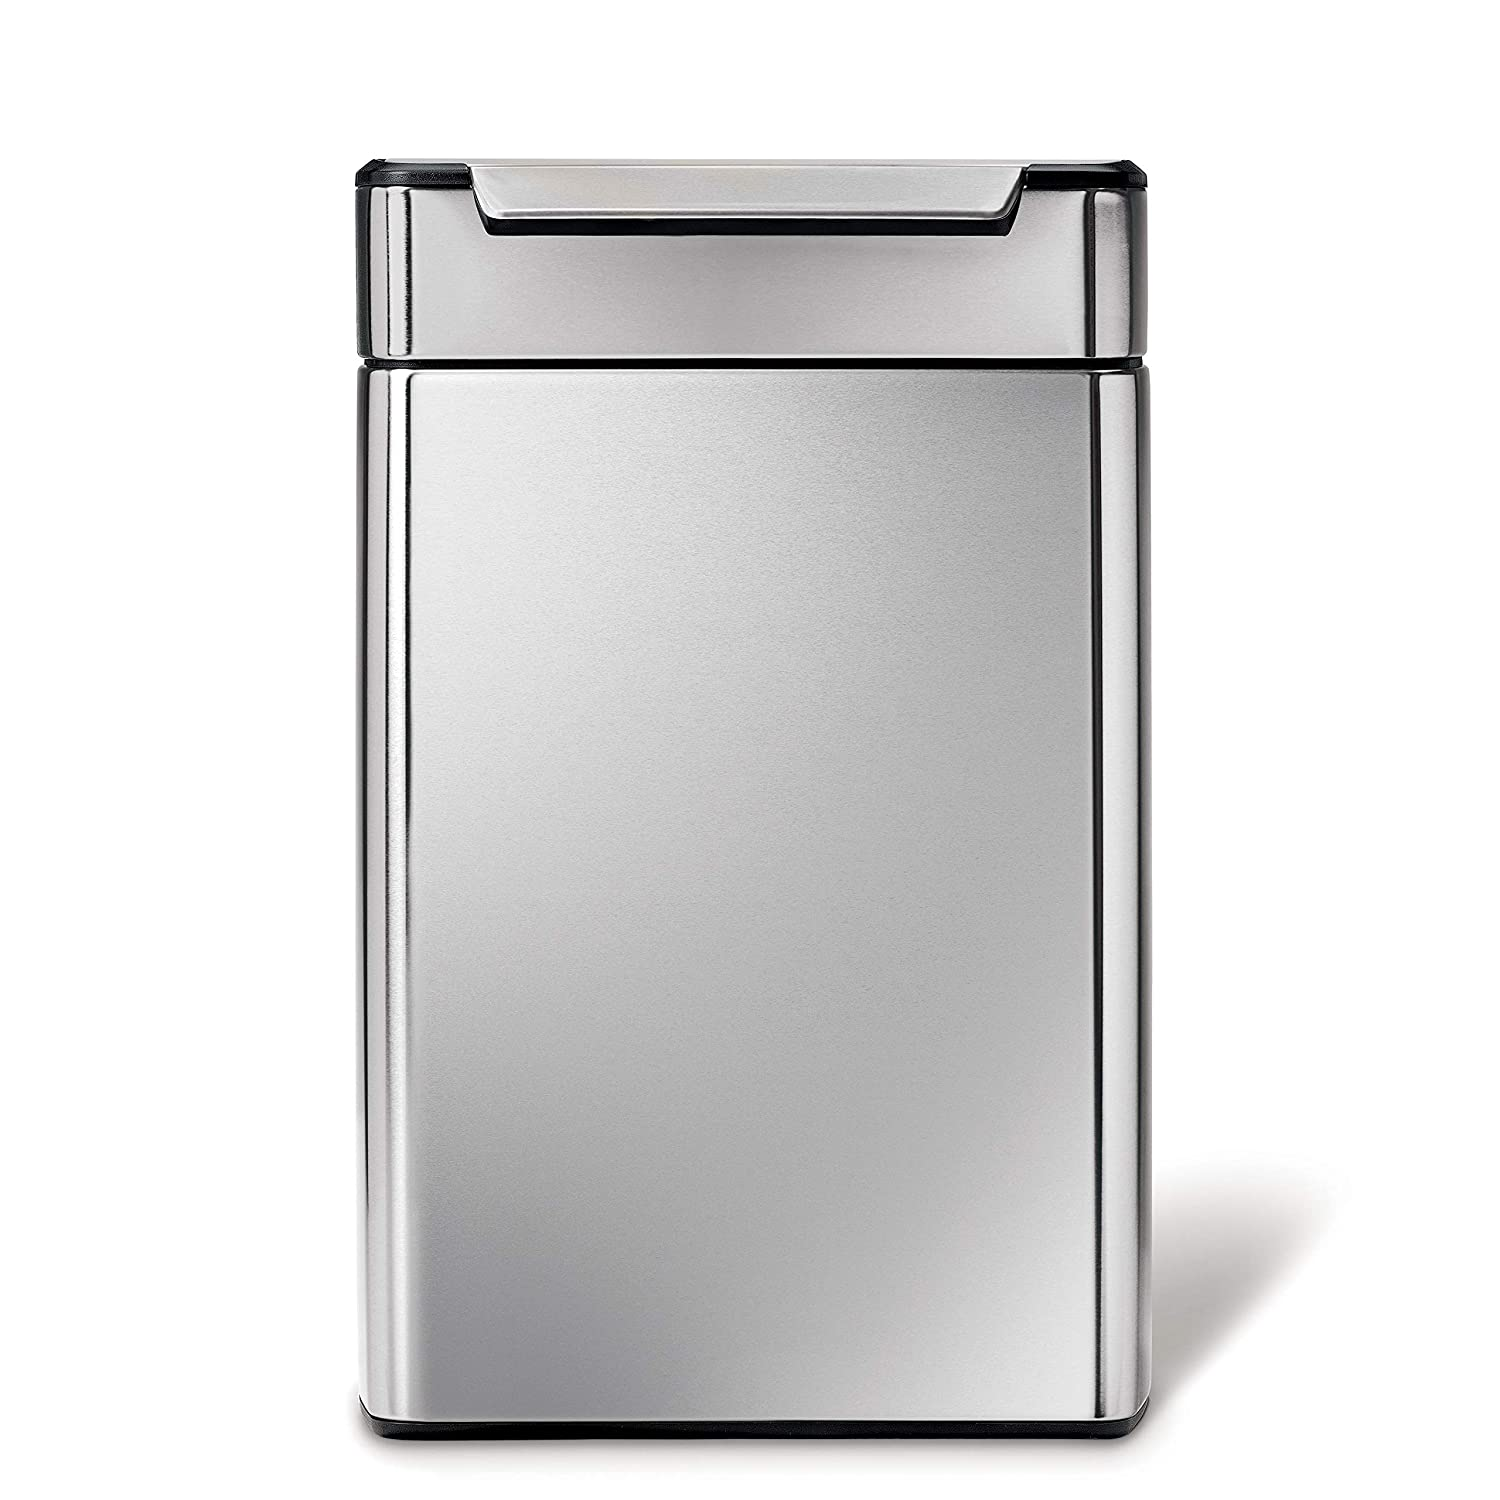 simplehuman 48 Liter / 12.7 Gallon Stainless Steel Touch-Bar Kitchen Dual Compartment Trash Can Recycler, Brushed Stainless Steel